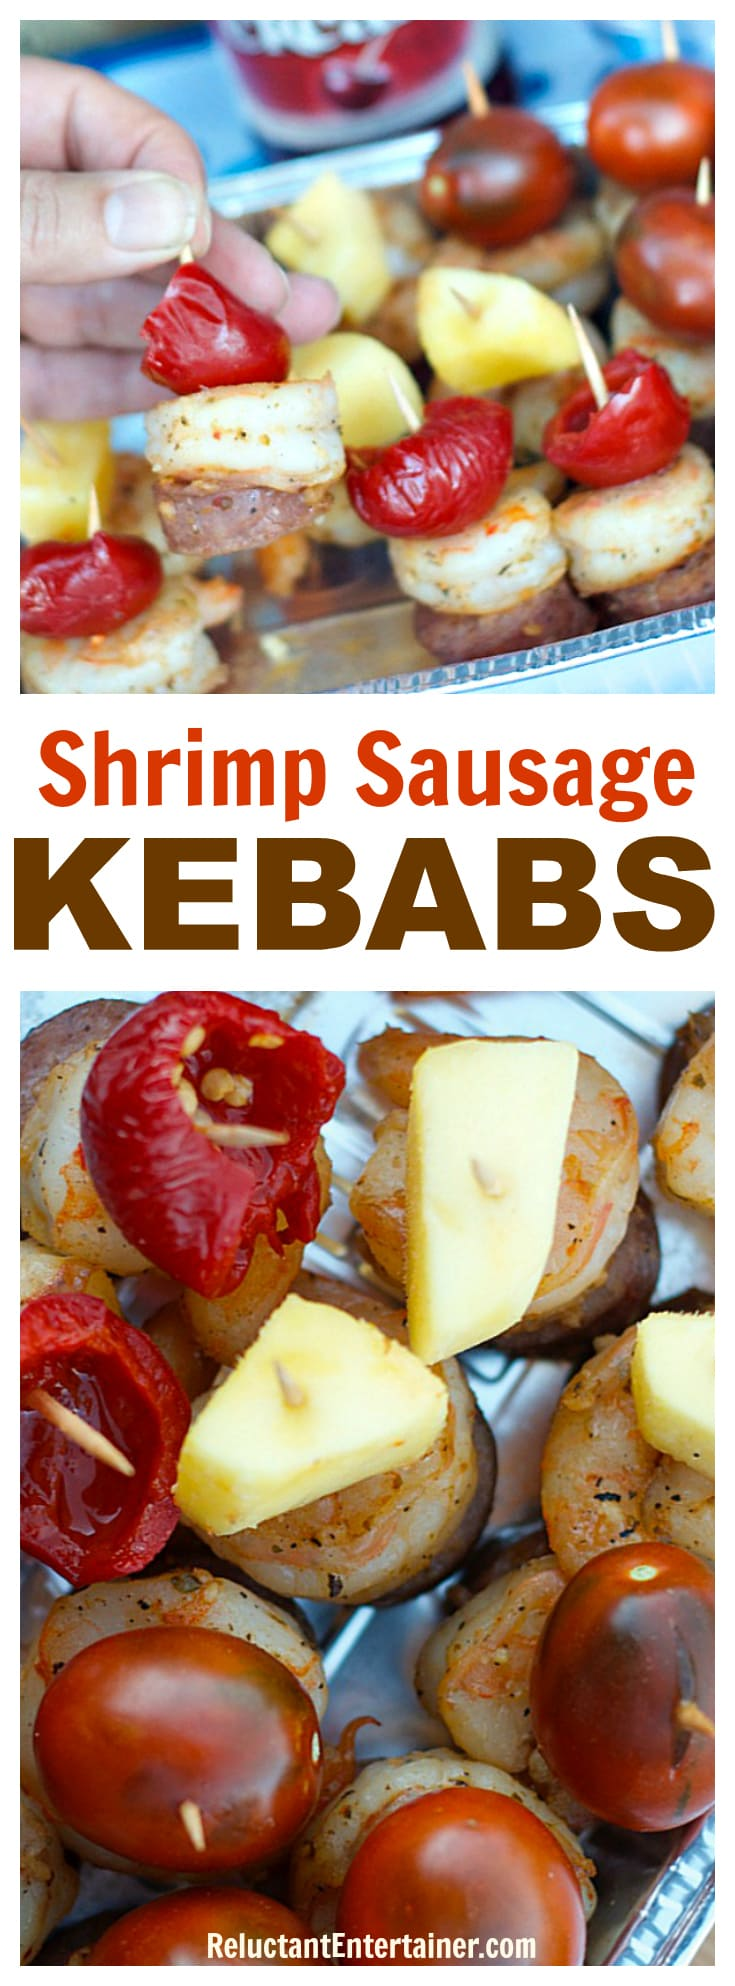 Shrimp Sausage Kebabs for tailgating or game day parties, picnics, or easy entertaining!